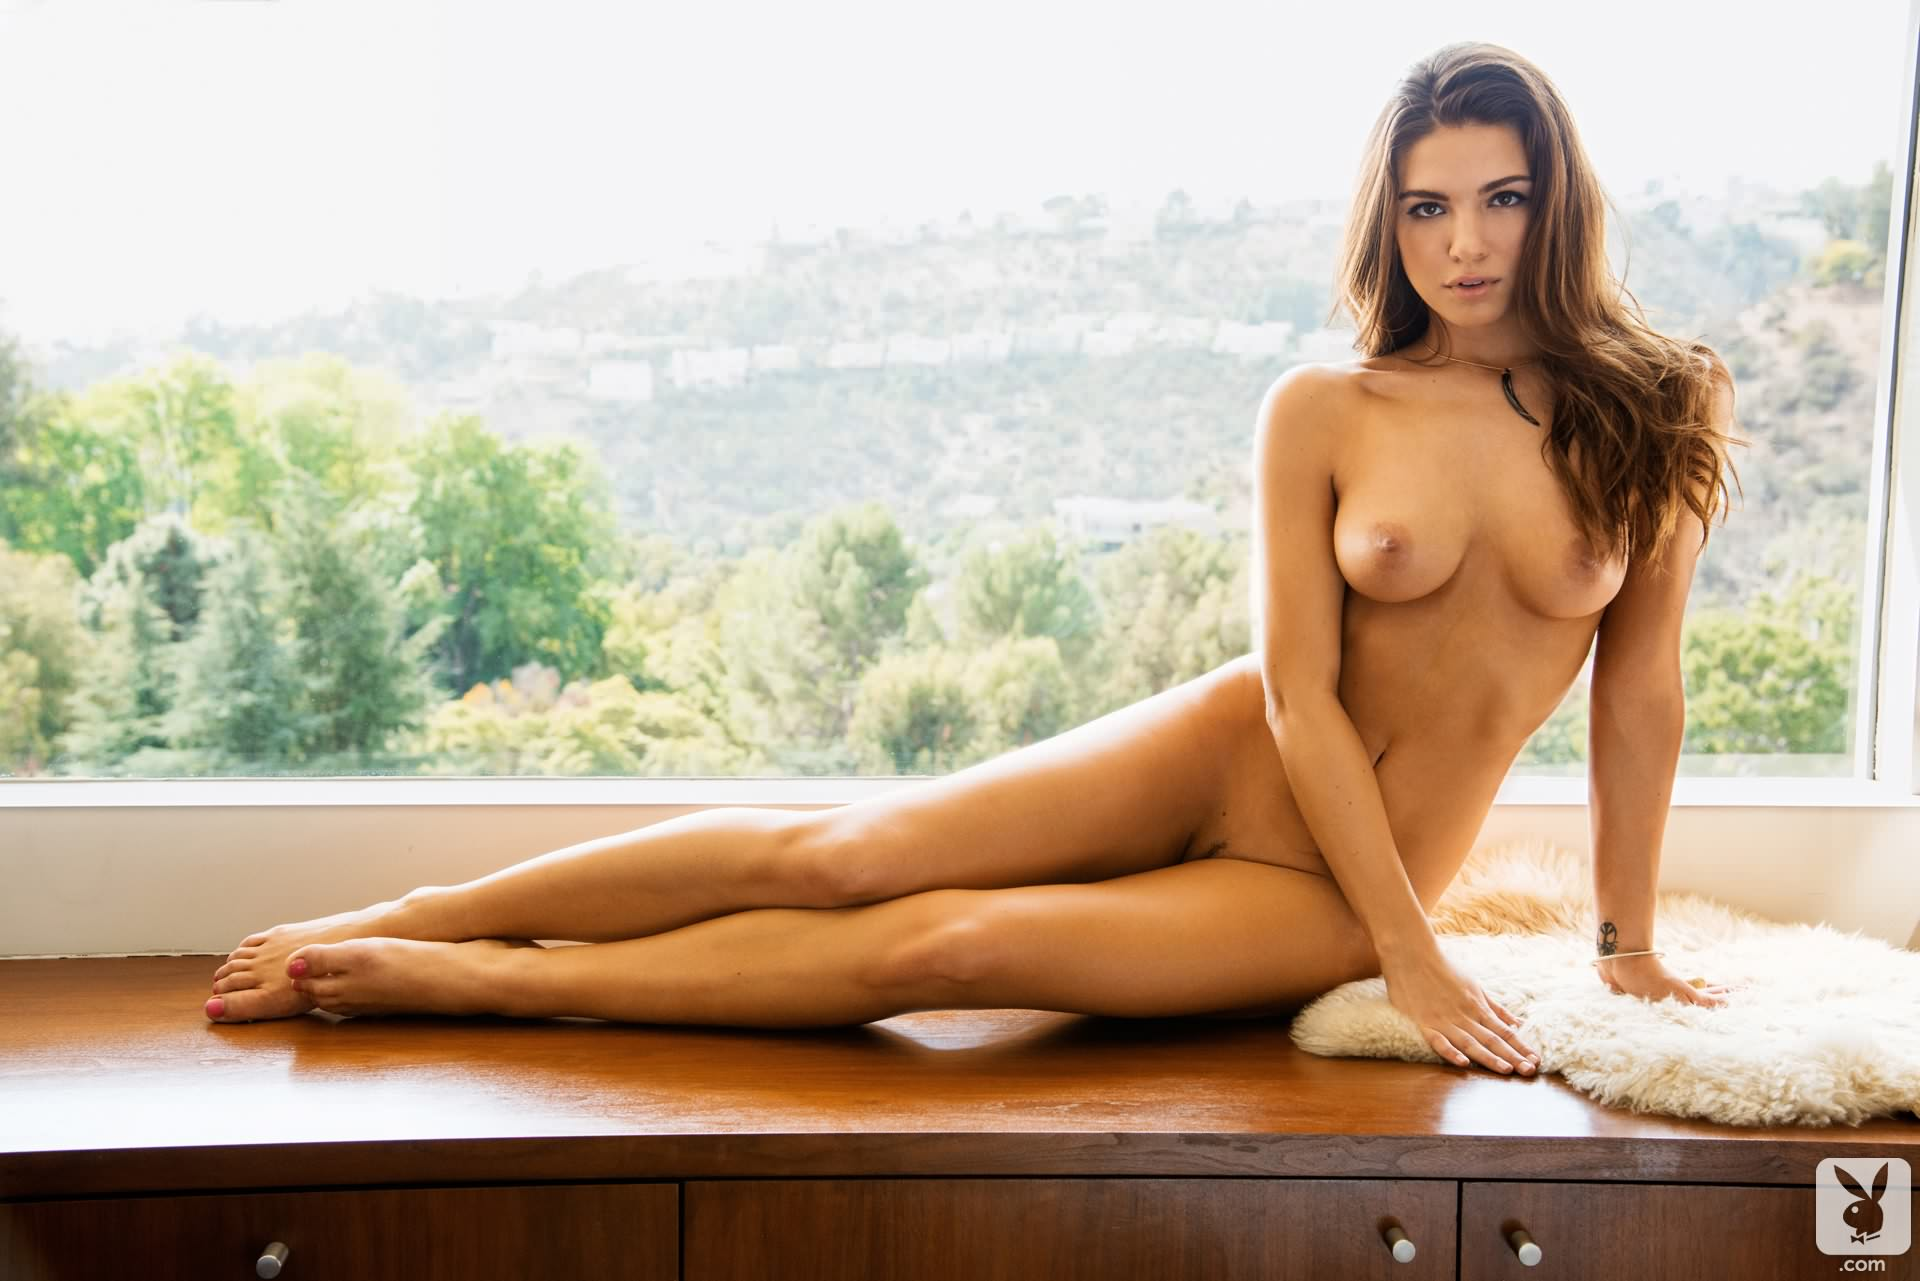 ashley tisdale naked pictures of her pussy